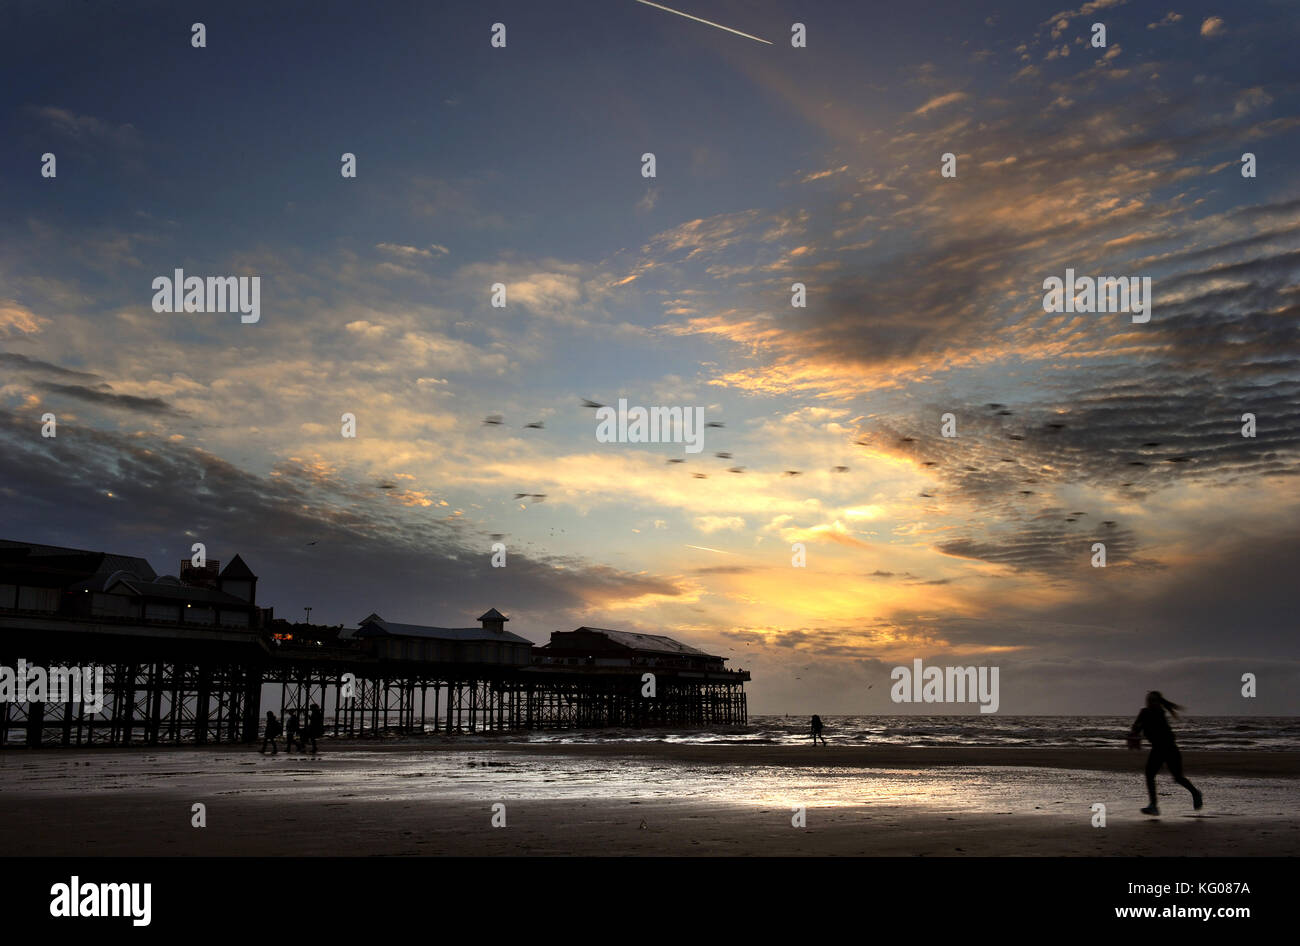 Sunset over the central pier in Blackpool, Lancashire UK. Picture by Paul Heyes, Wednesday October 25, 2017. - Stock Image